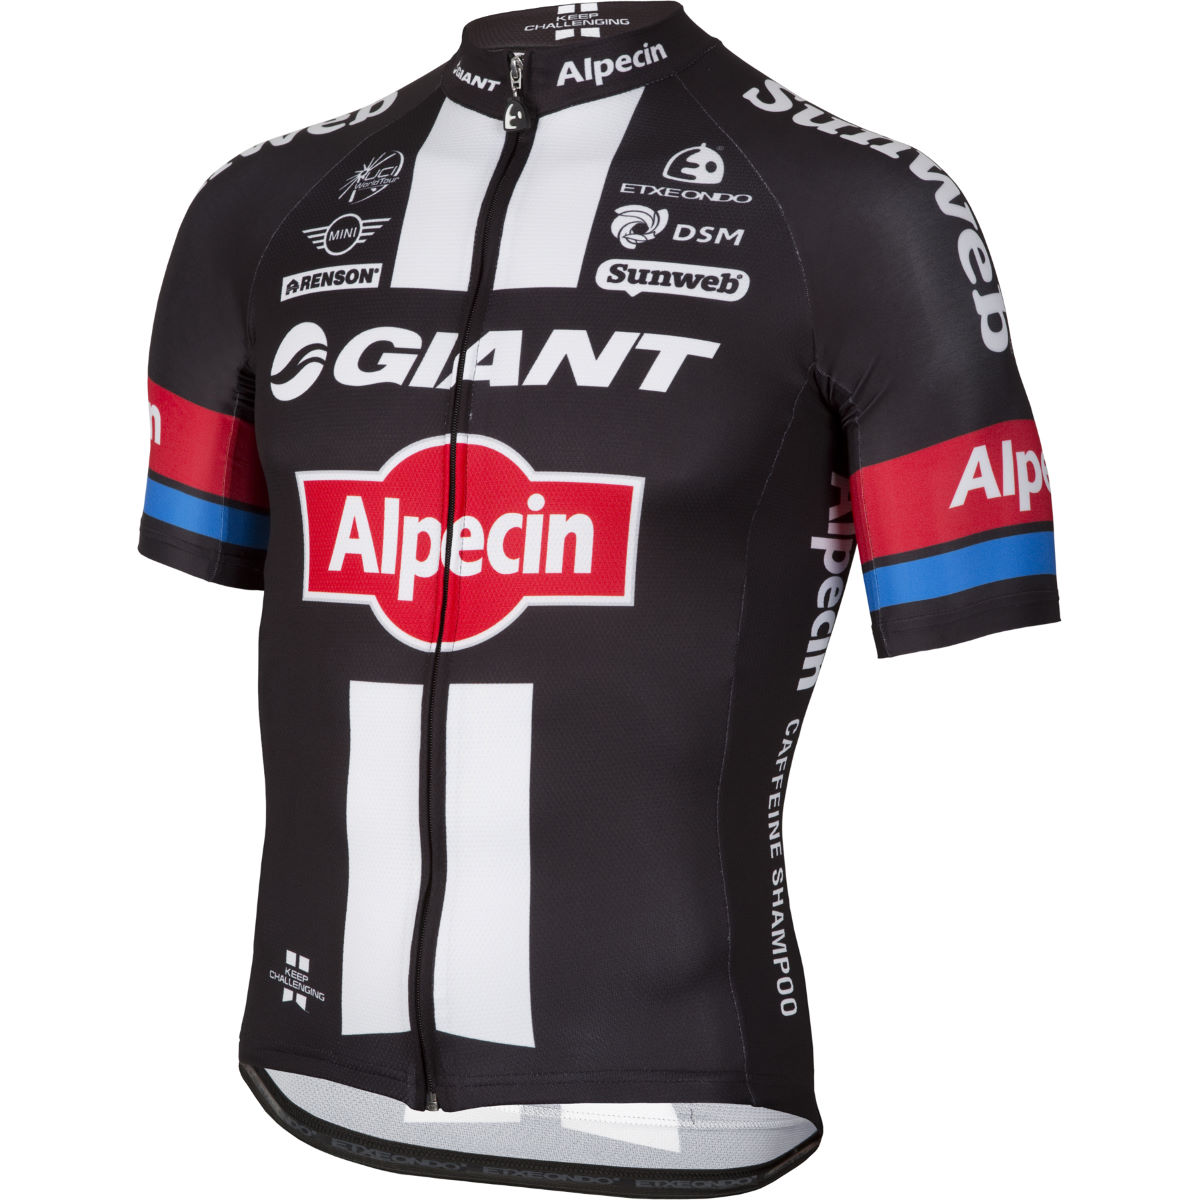 Etxeondo Giant Alpecin Replica Jersey   Team Jerseys